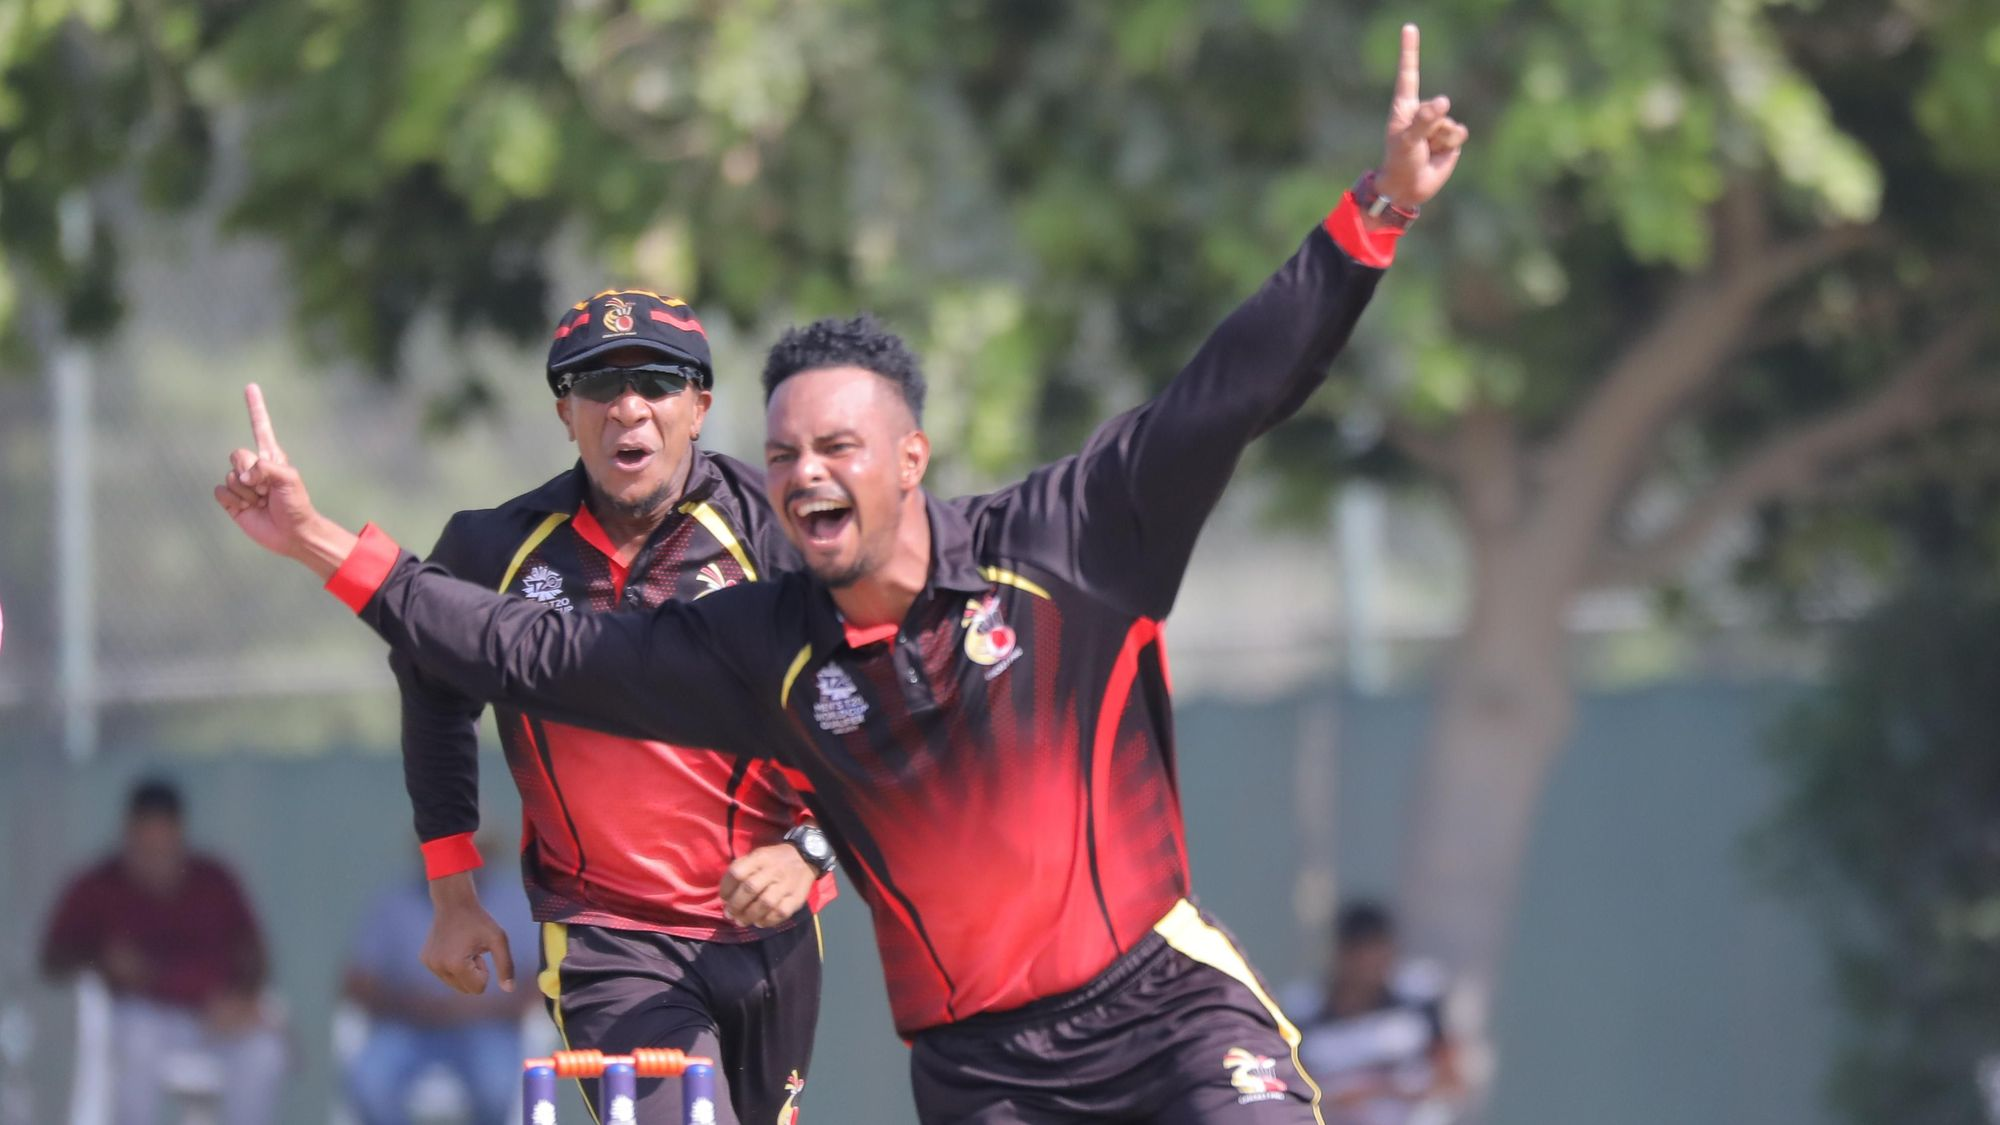 Norman Vanua was fantastic throughout the ICC Men's T20 World Cup Qualifier, but his best performances came against Bermuda when he dismissed Dion Stovell, Kamau Leverock and Deunte Darell in succession to set up an easy win for Papua New Guinea.